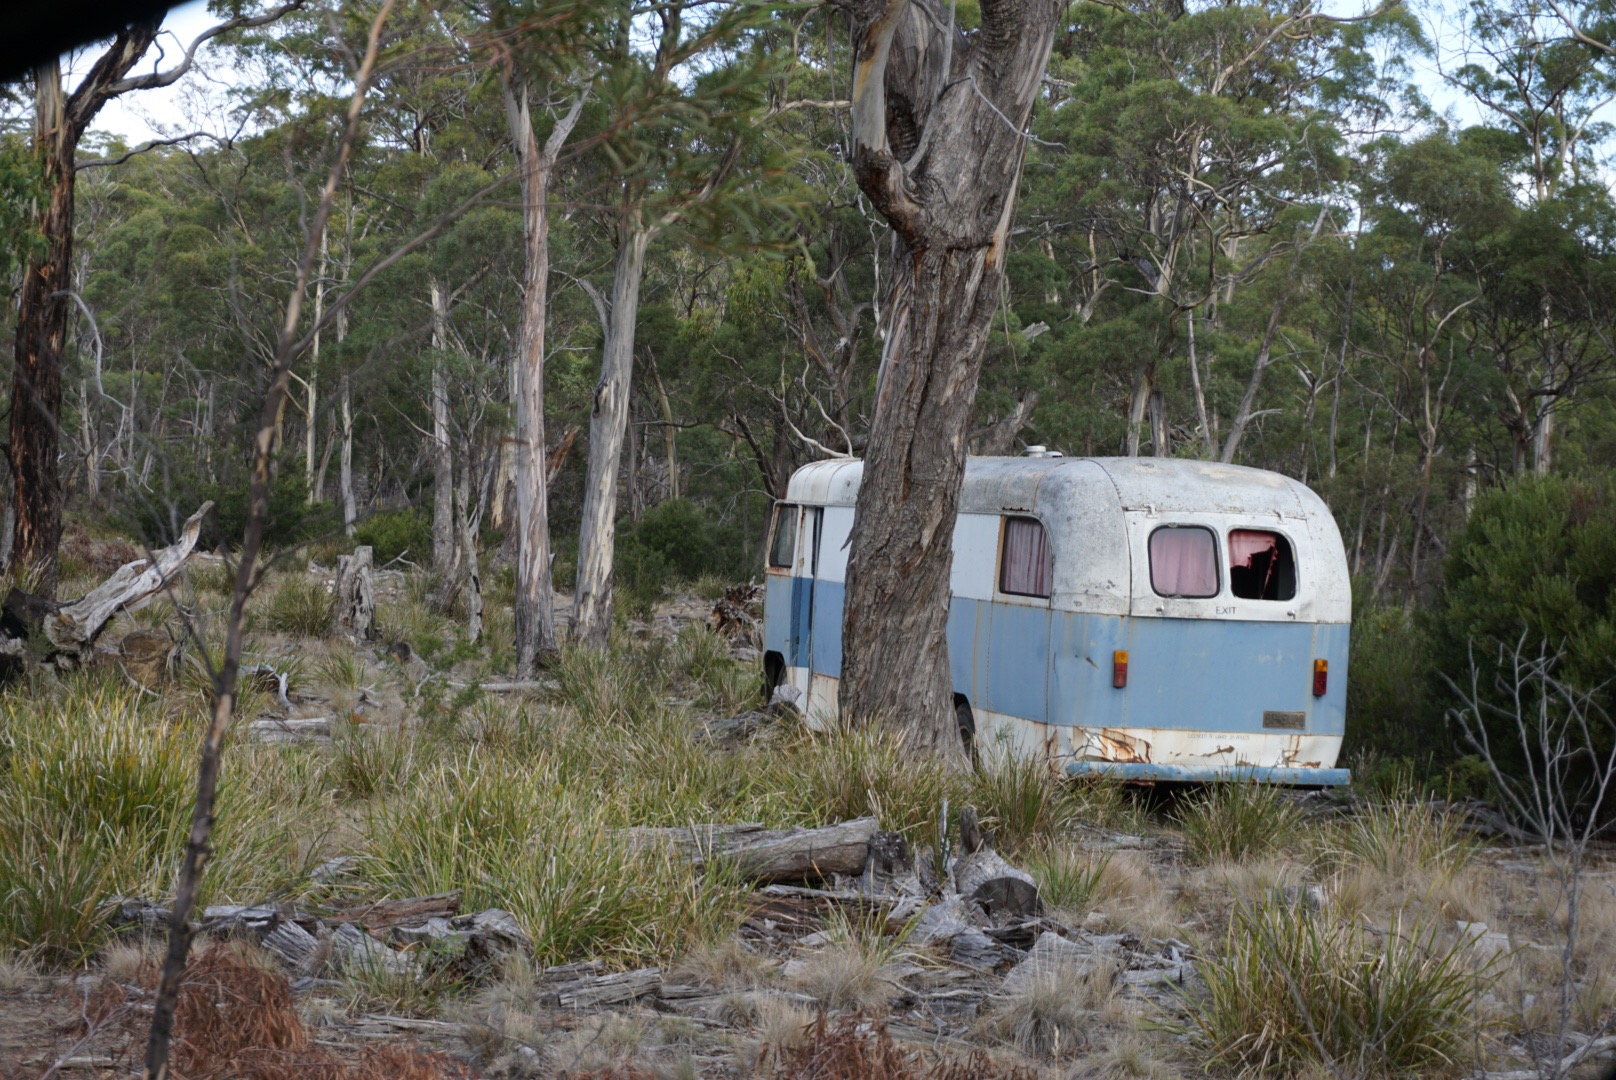 A Rare Wild Bus: Taking Care of Tasmania || Traveling Honeybird